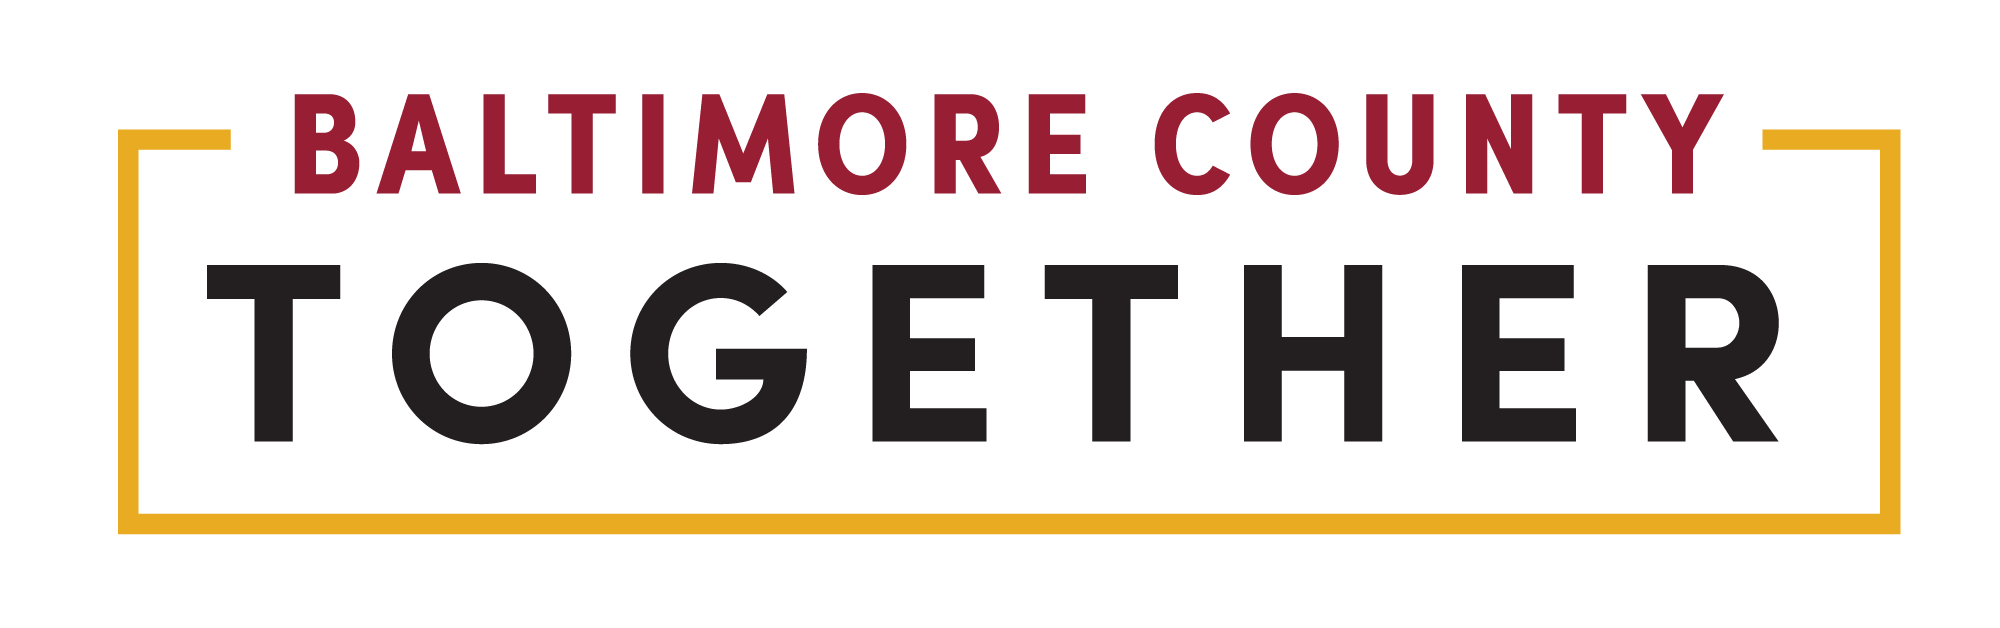 baltimore-county-together